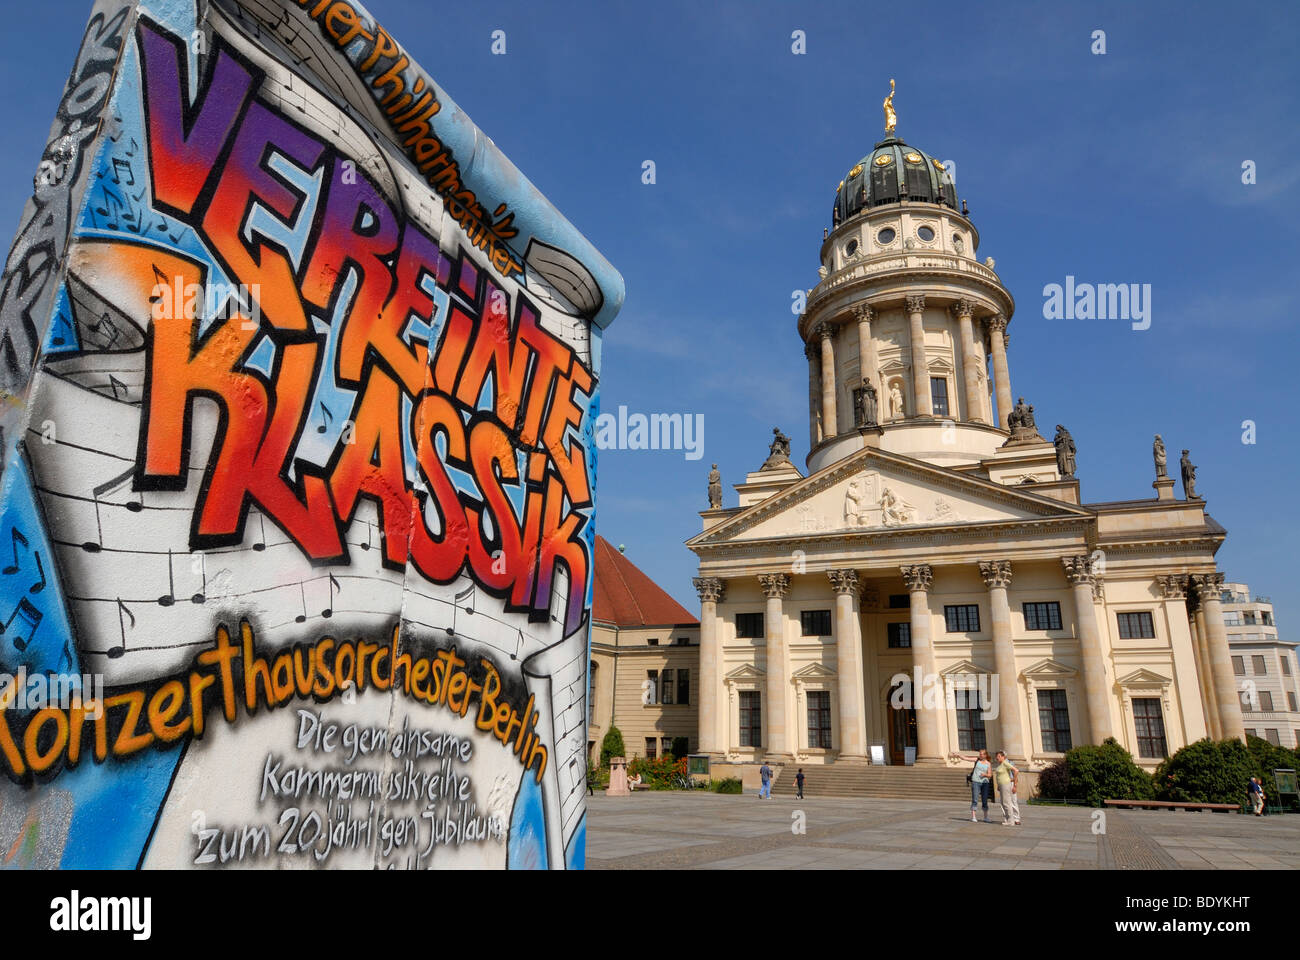 Graffiti as advertising on a piece of the Berlin Wall, French Cathedral, Gendarmenmarkt, Berlin, Germany, Europe - Stock Image